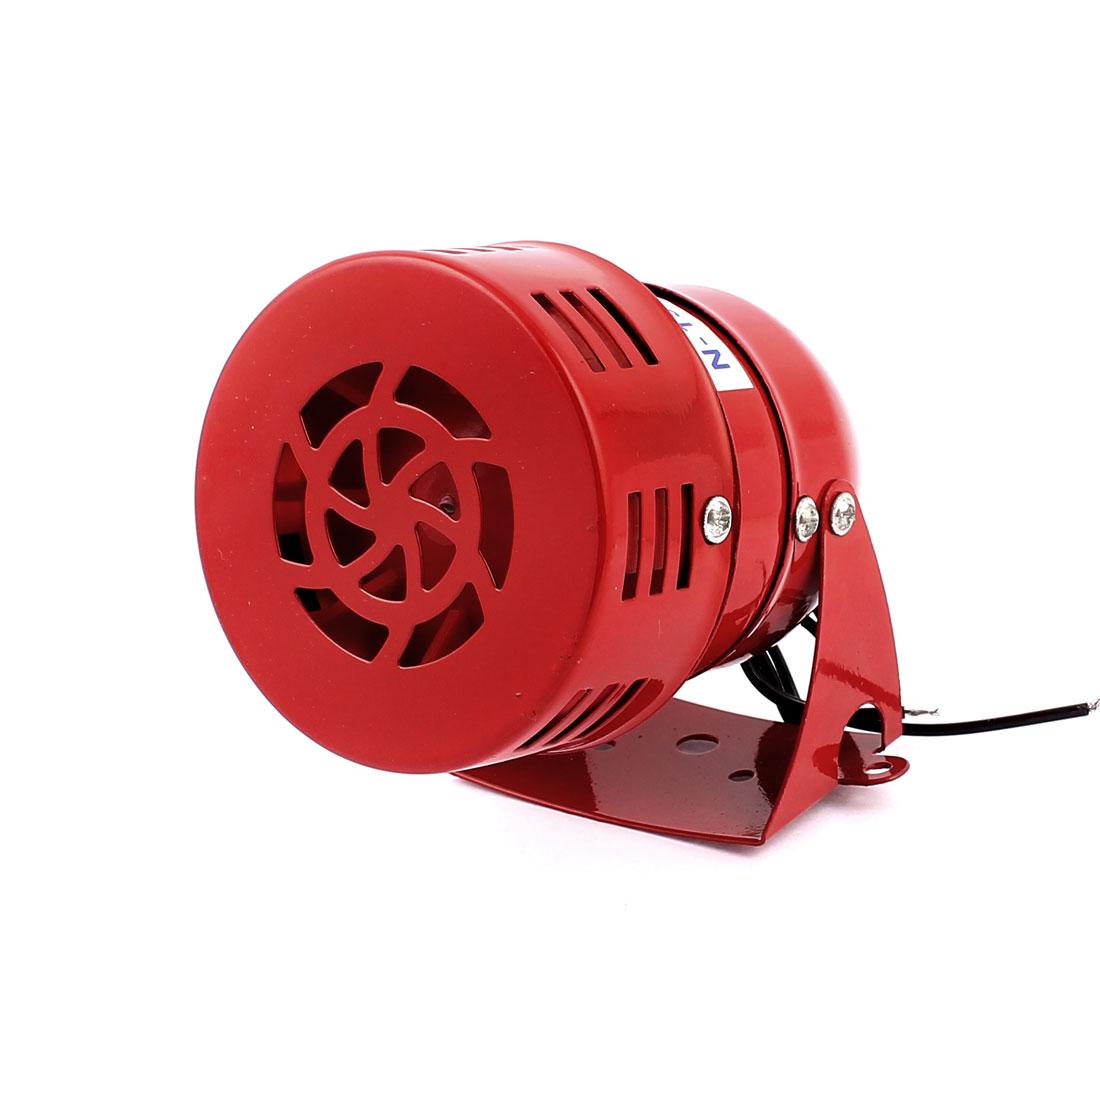 AC 220V 114dB Warning Horn Security Micro Motor Siren Alarm Red MS-190